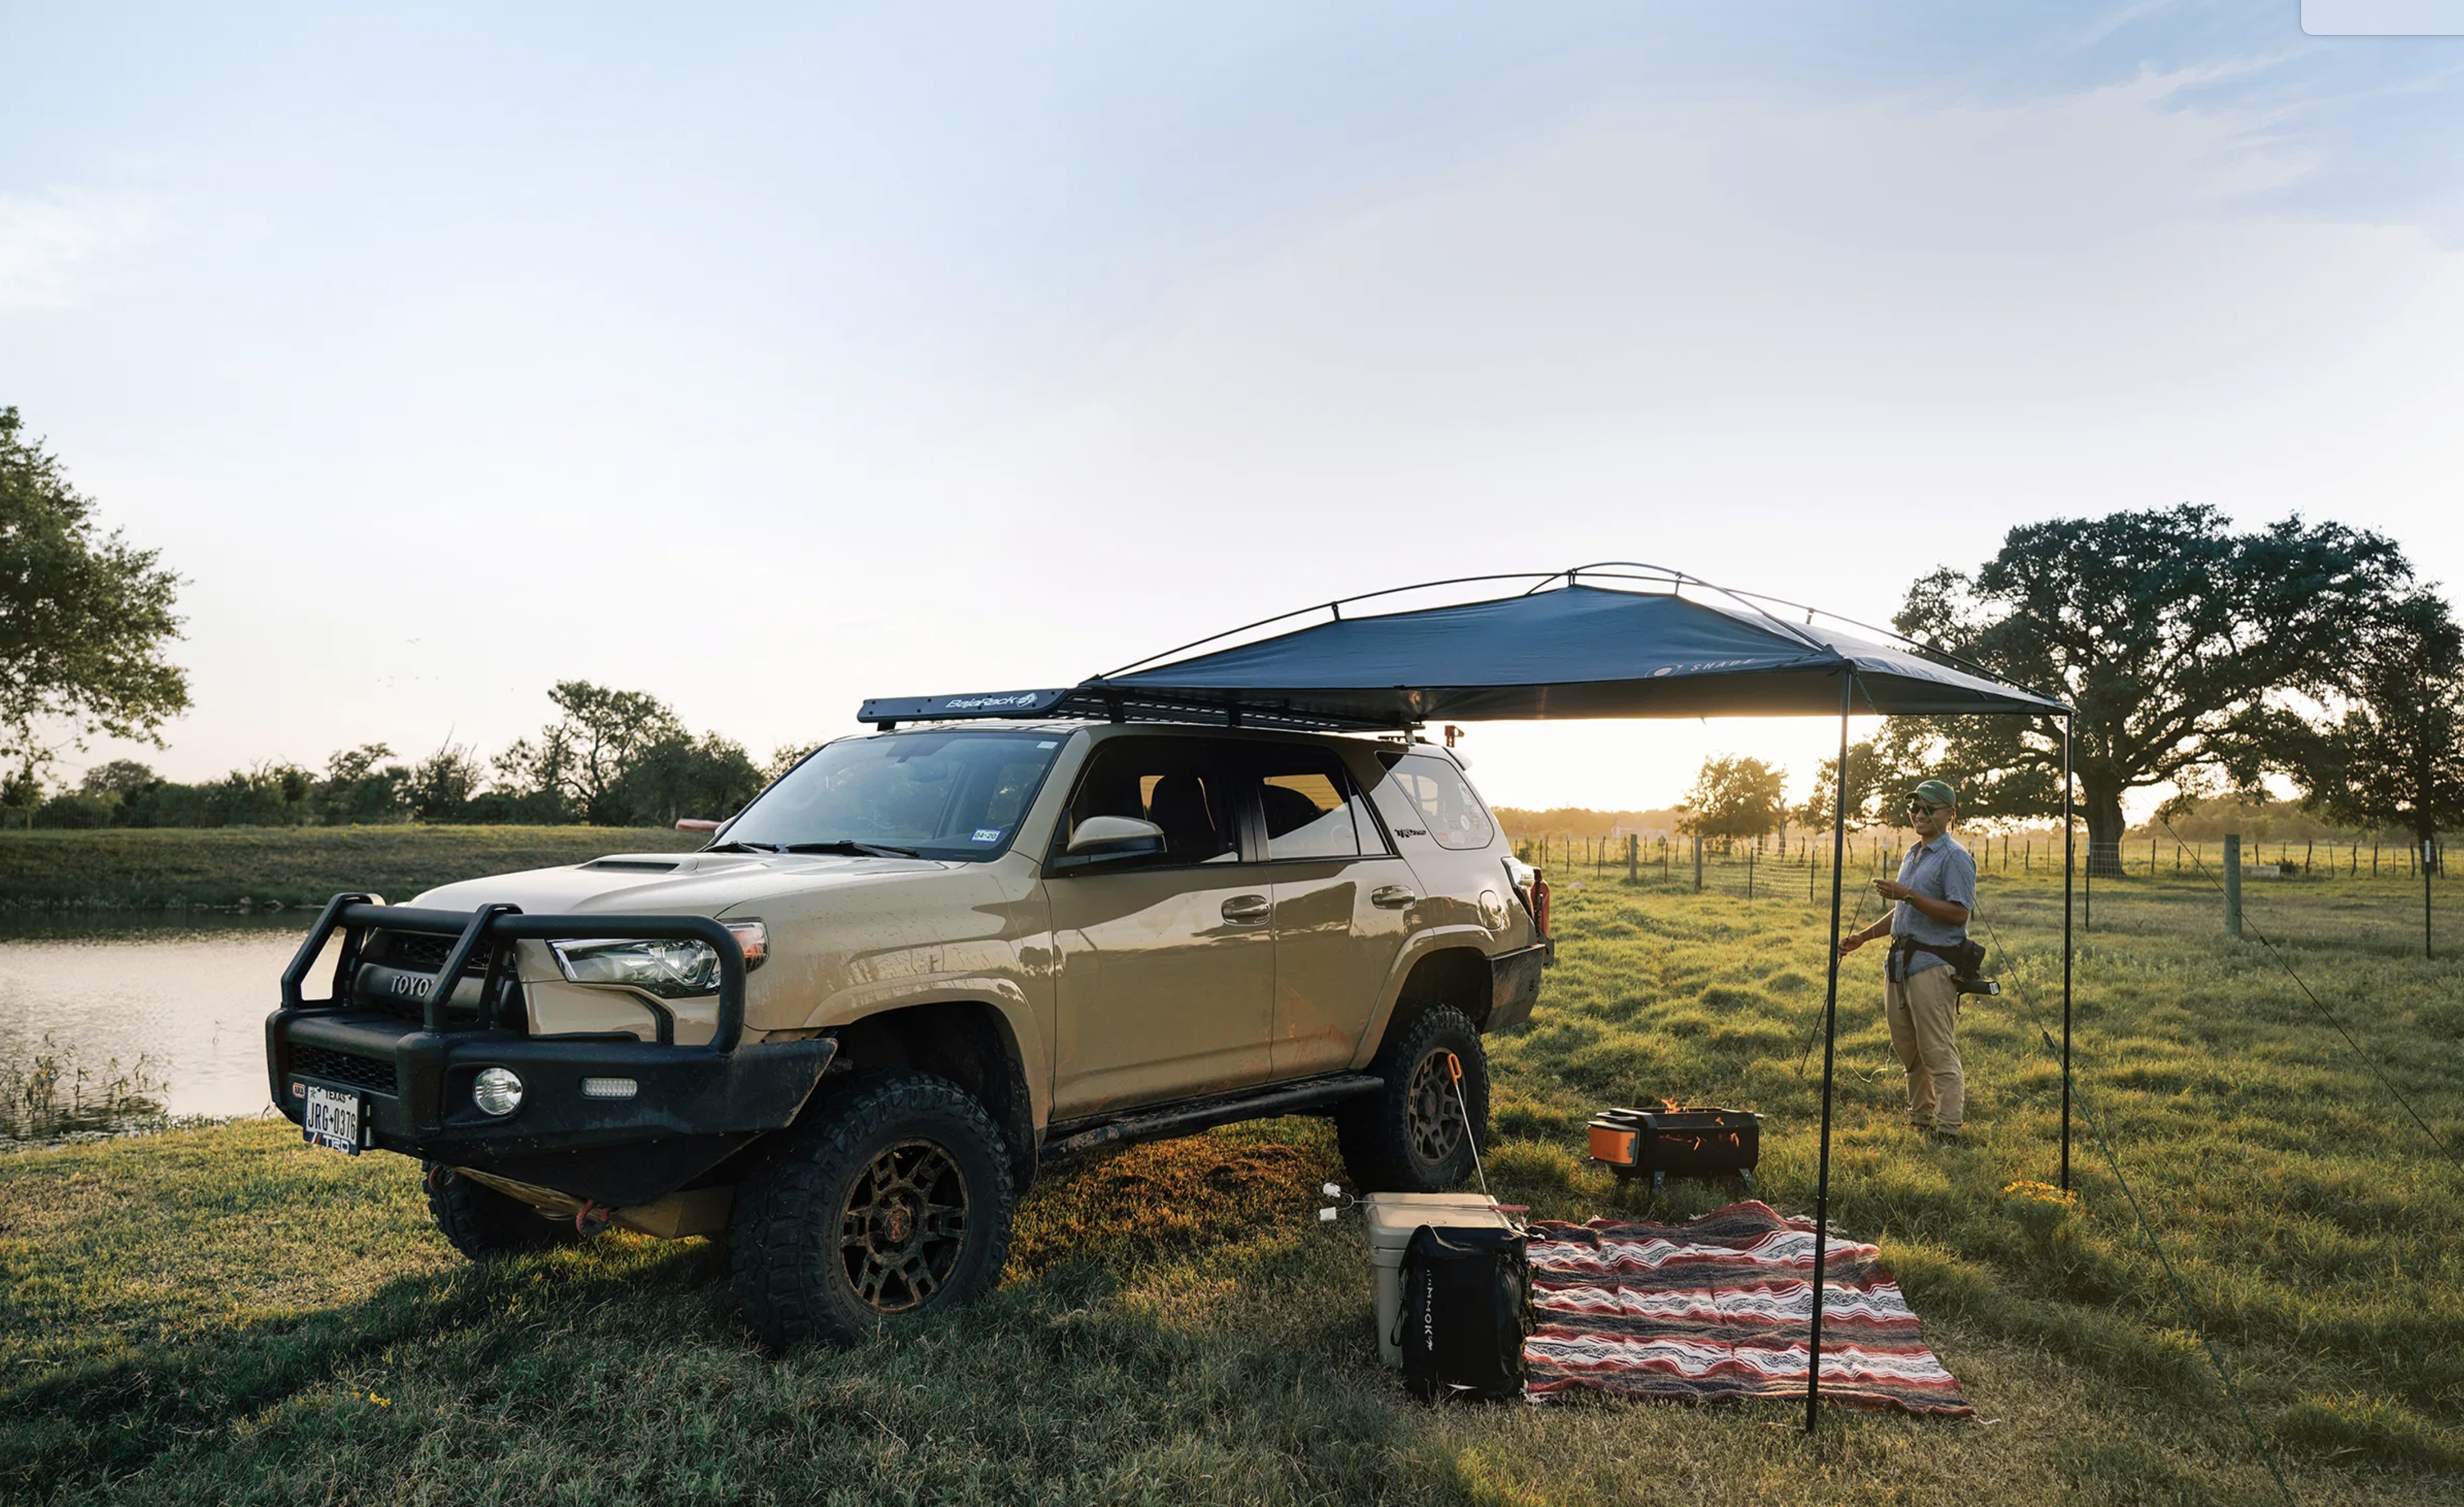 Camp Cool: The MoonShade is the Lightweight, Portable, Temporary Awning You Need